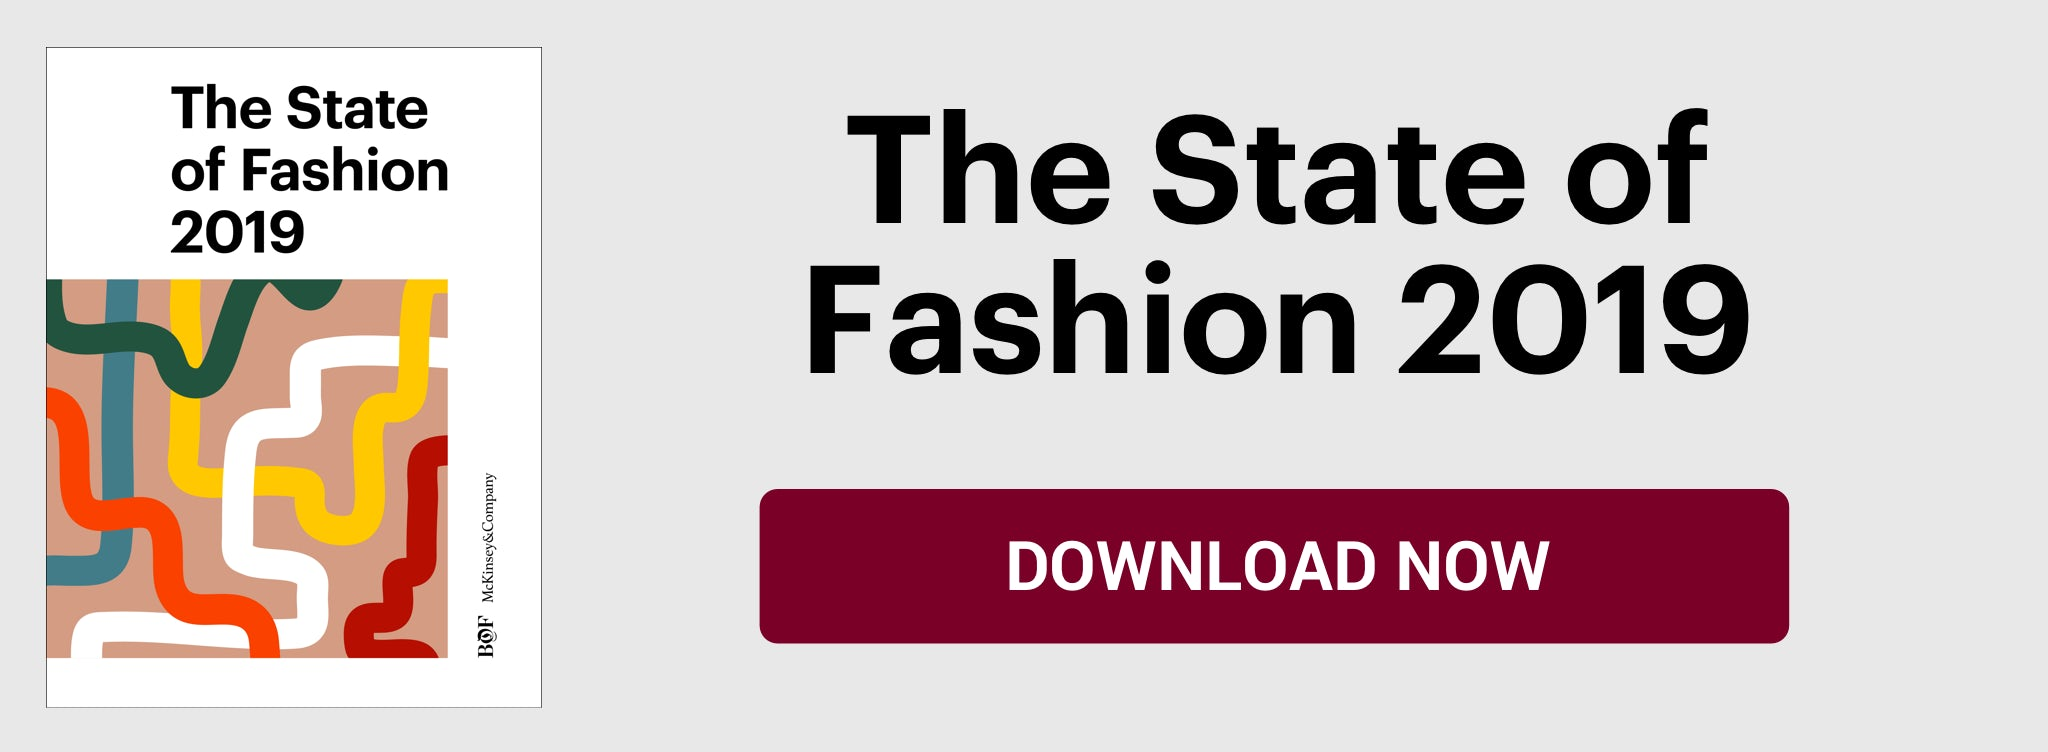 The State of Fashion 2019. Download Now